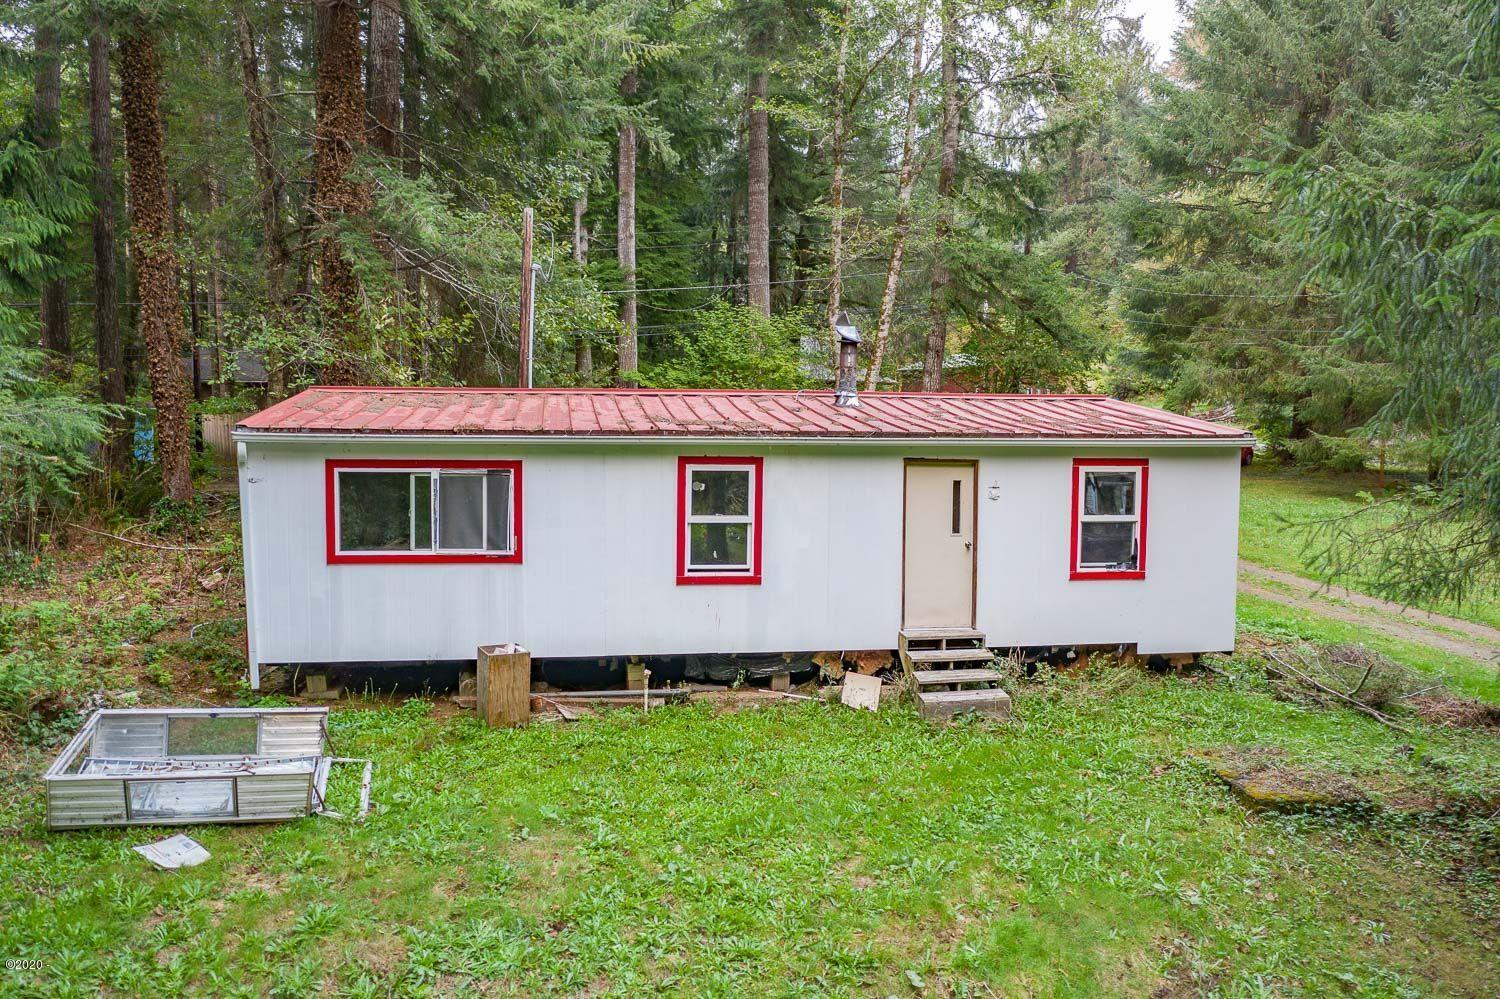 23 N New Bridge Ct, Otis, OR 97368 - Manufactured Home